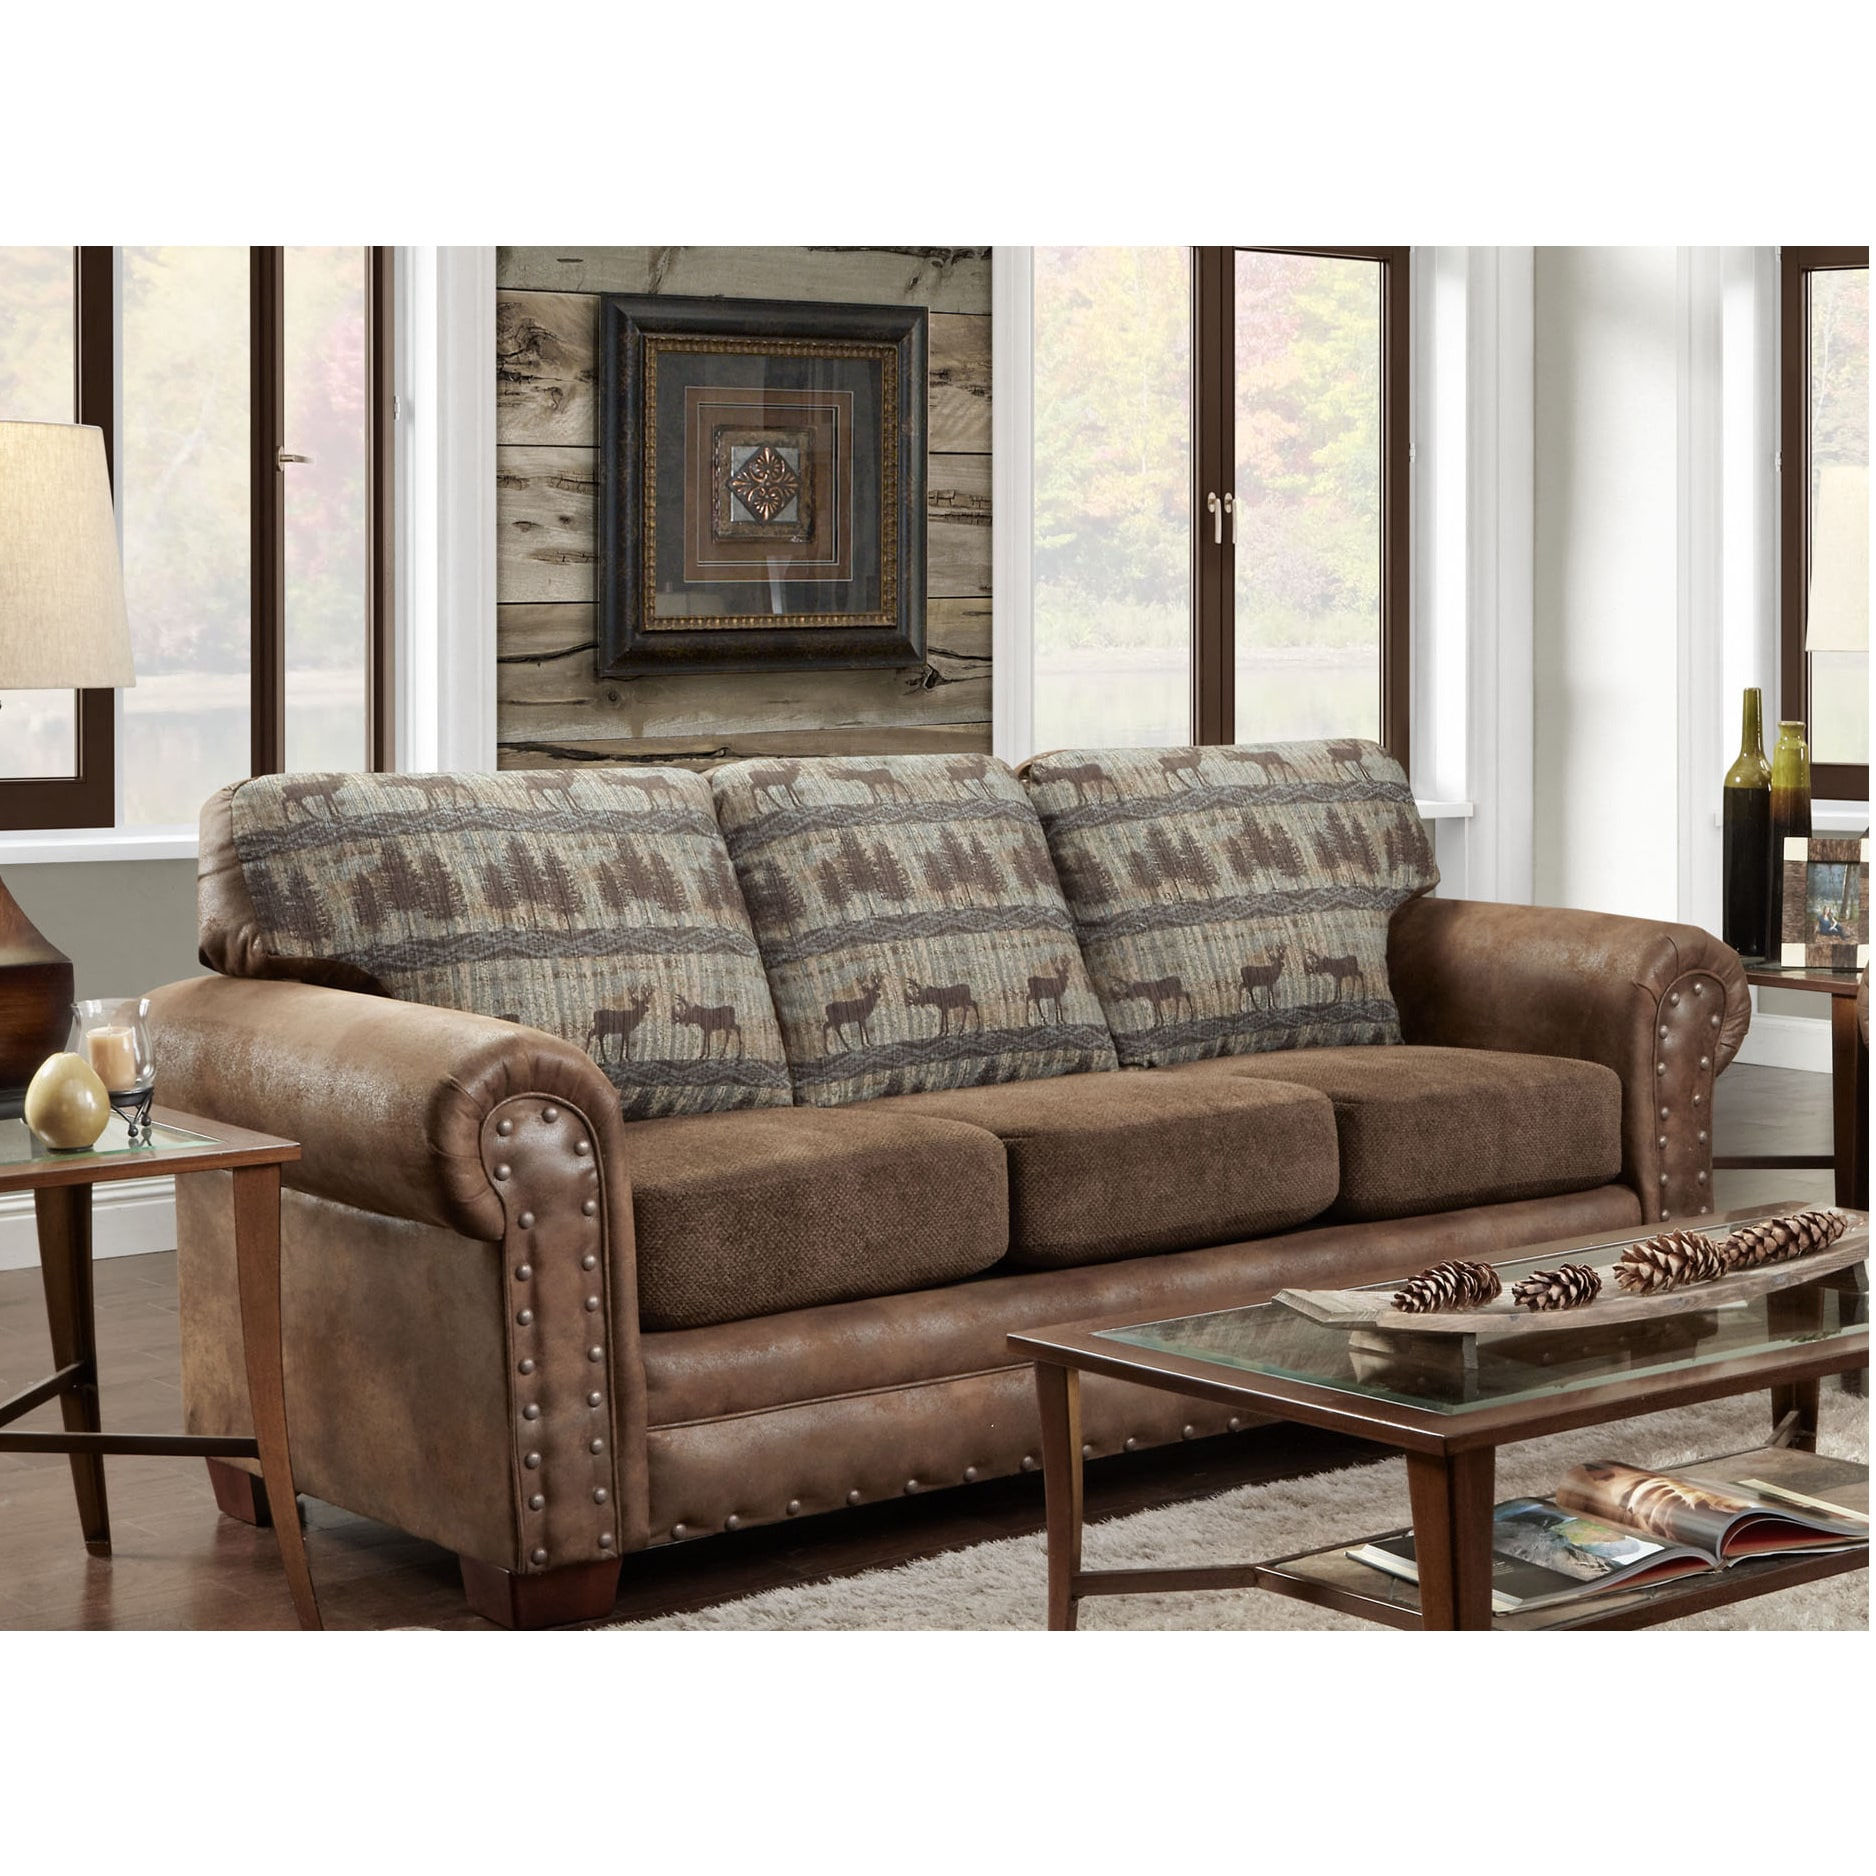 Attractive American Furniture Classics Deer Teal Lodge Tapestry Sofa Sleeper   Free  Shipping Today   Overstock   22088810